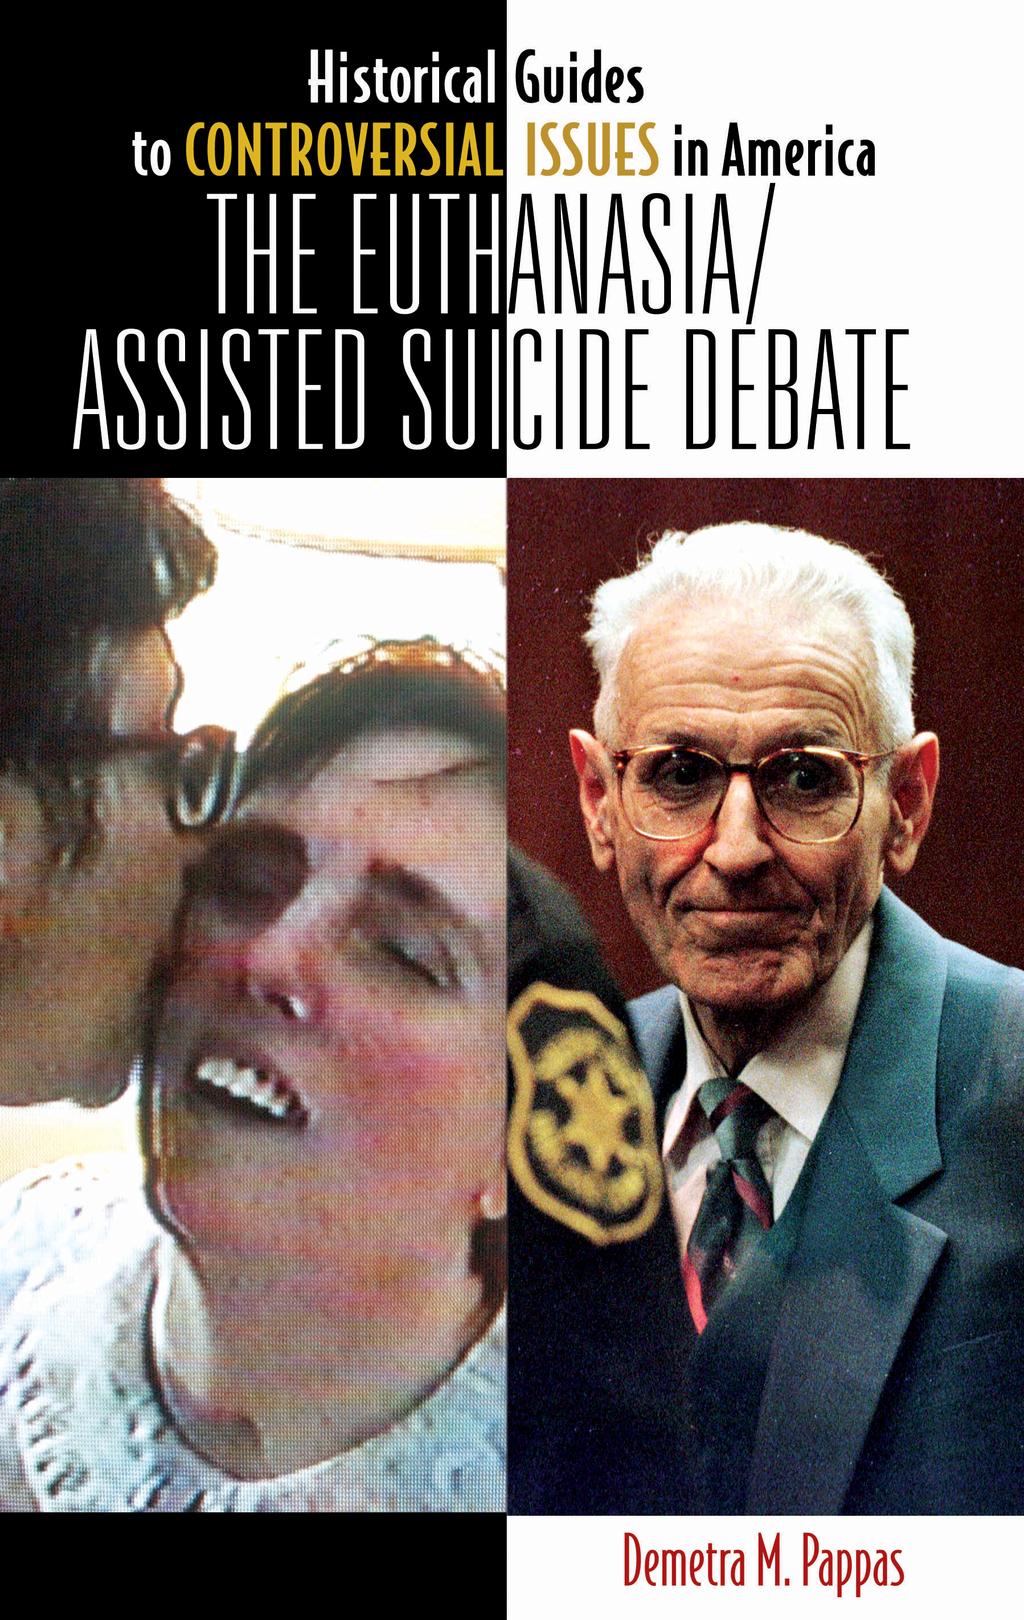 a personal view of the controversial debate on euthanasia